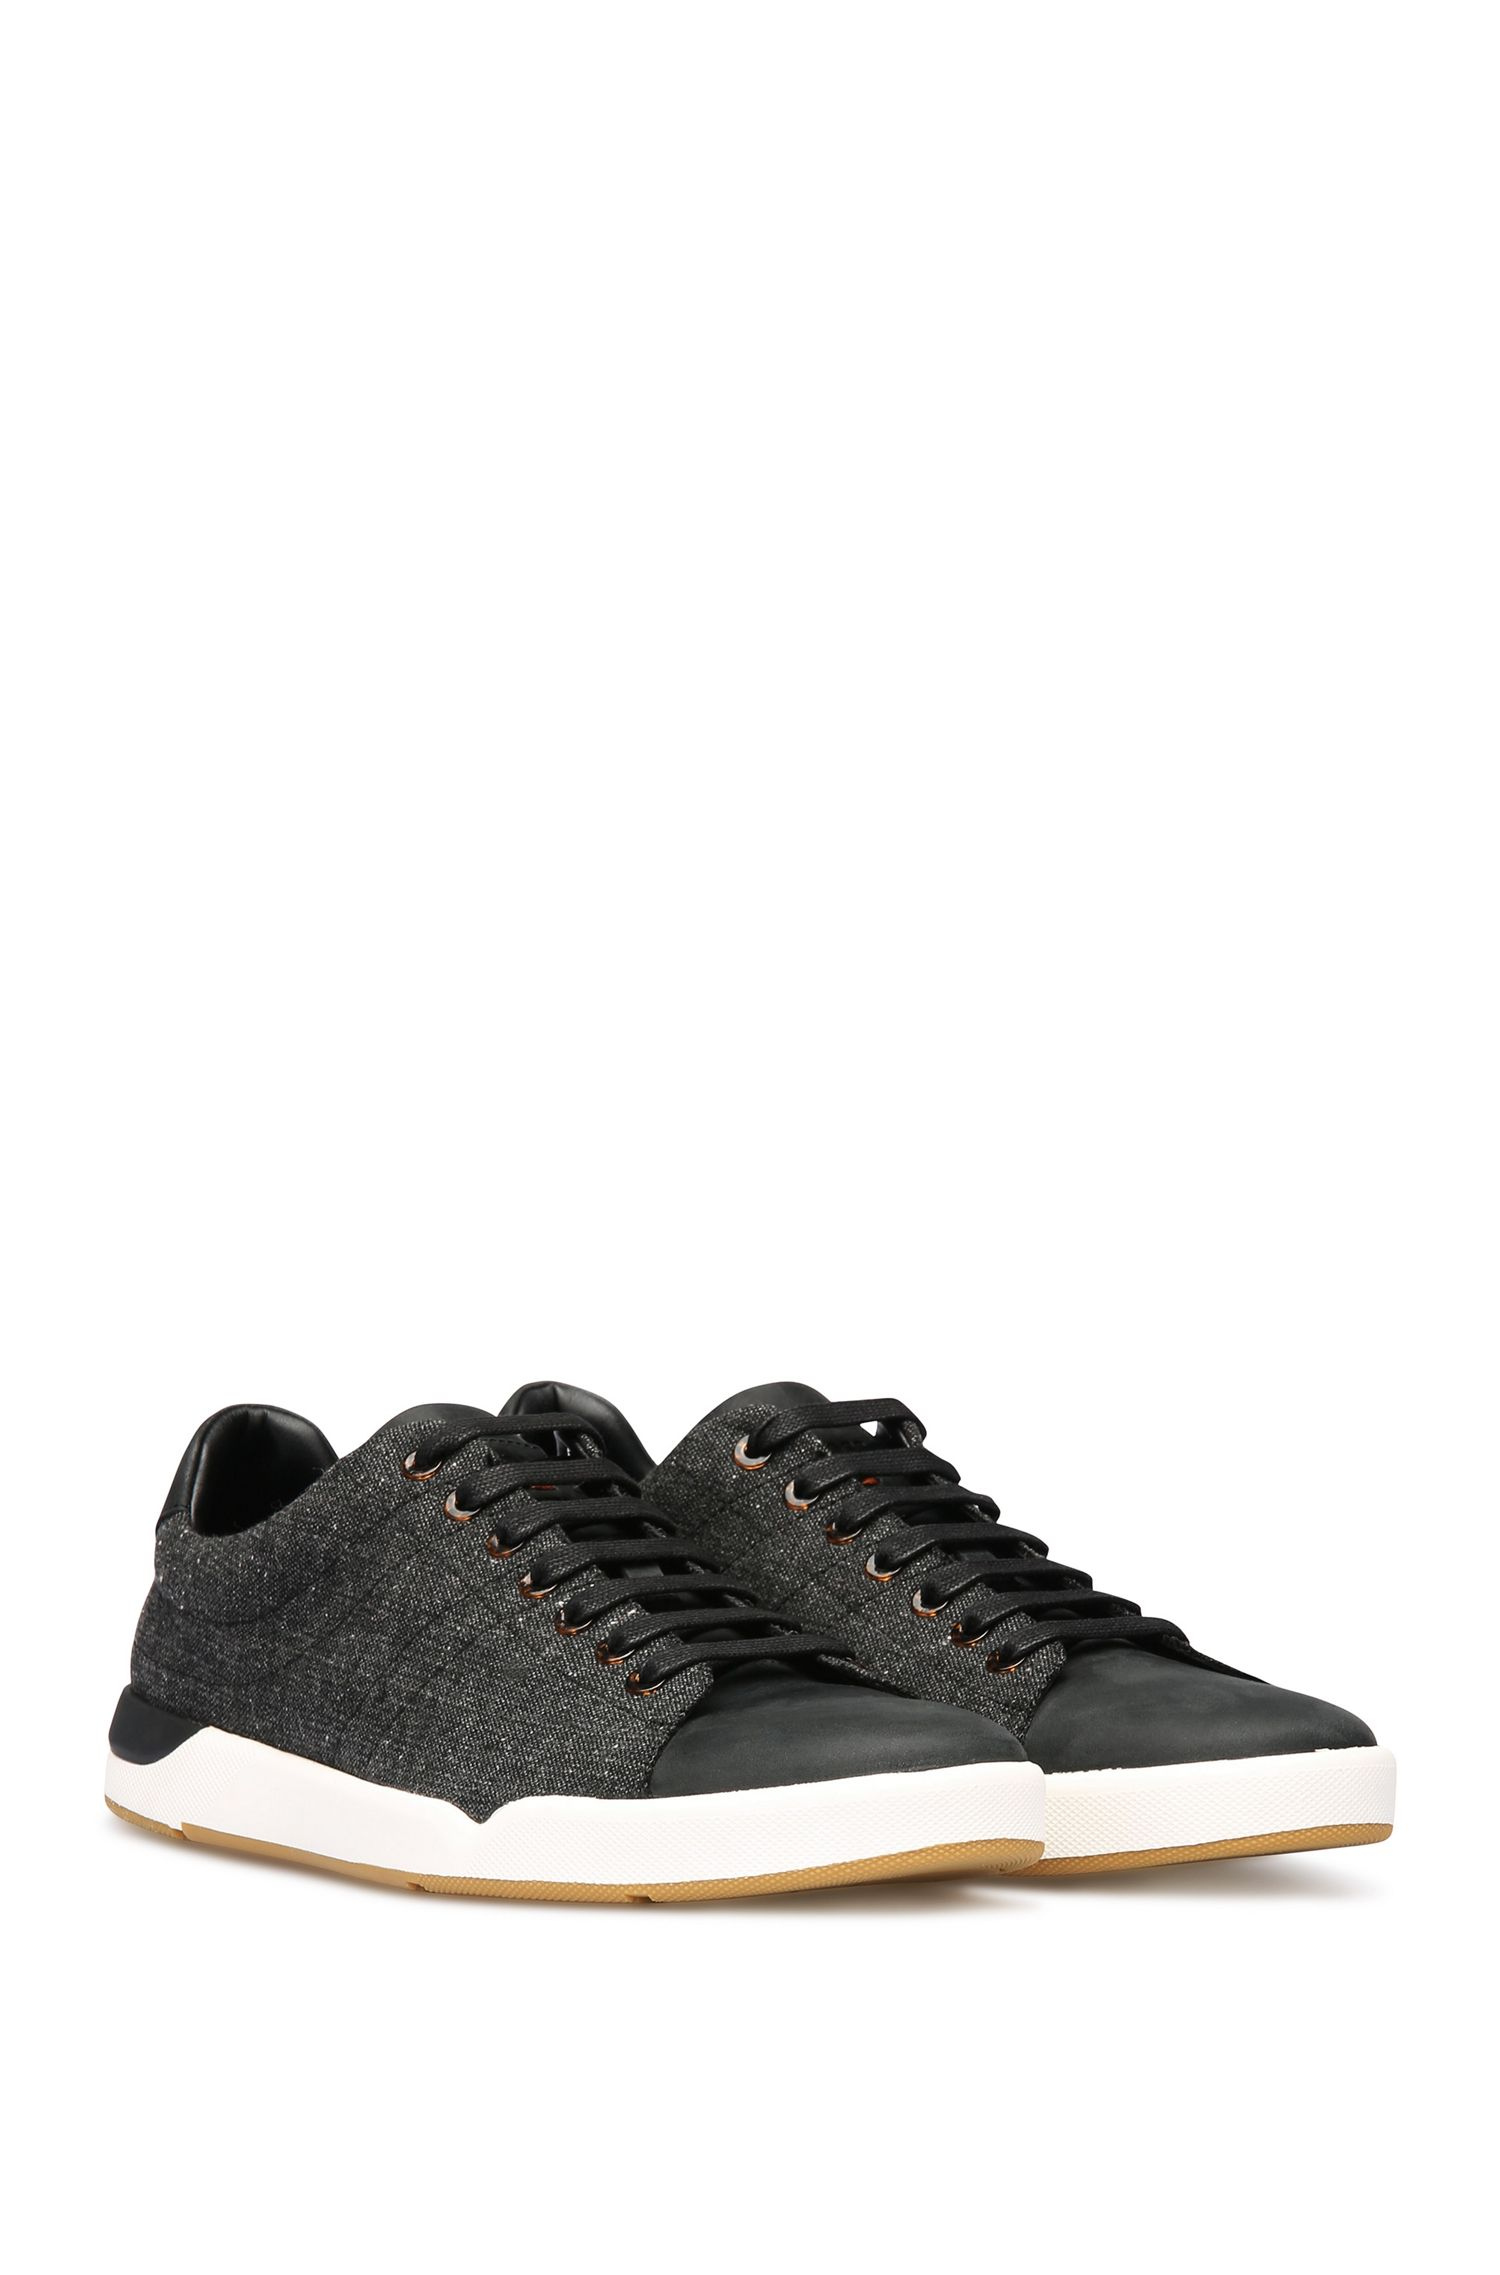 'Stillness Tenn Tw' | Tweed Leather Sneakers